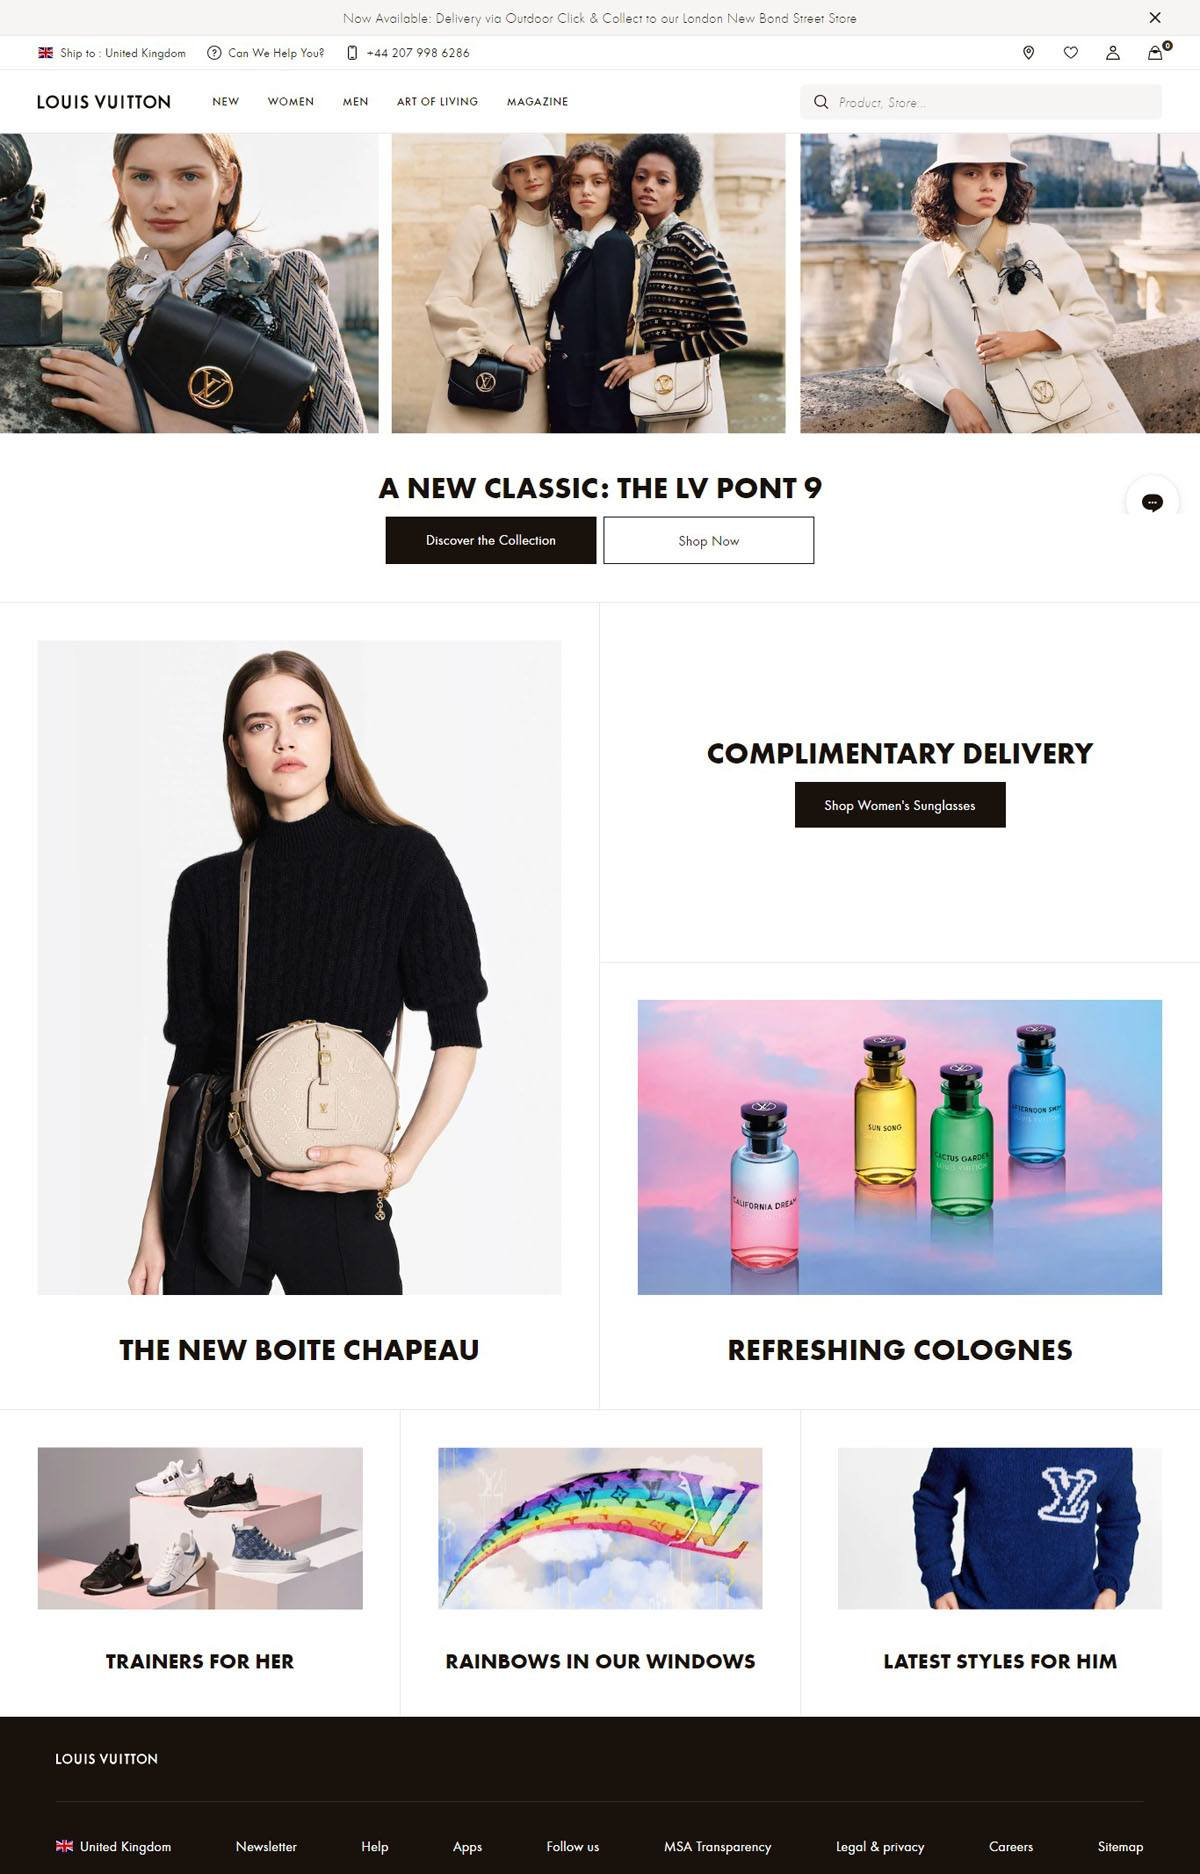 eCommerce website: Louis Vuitton